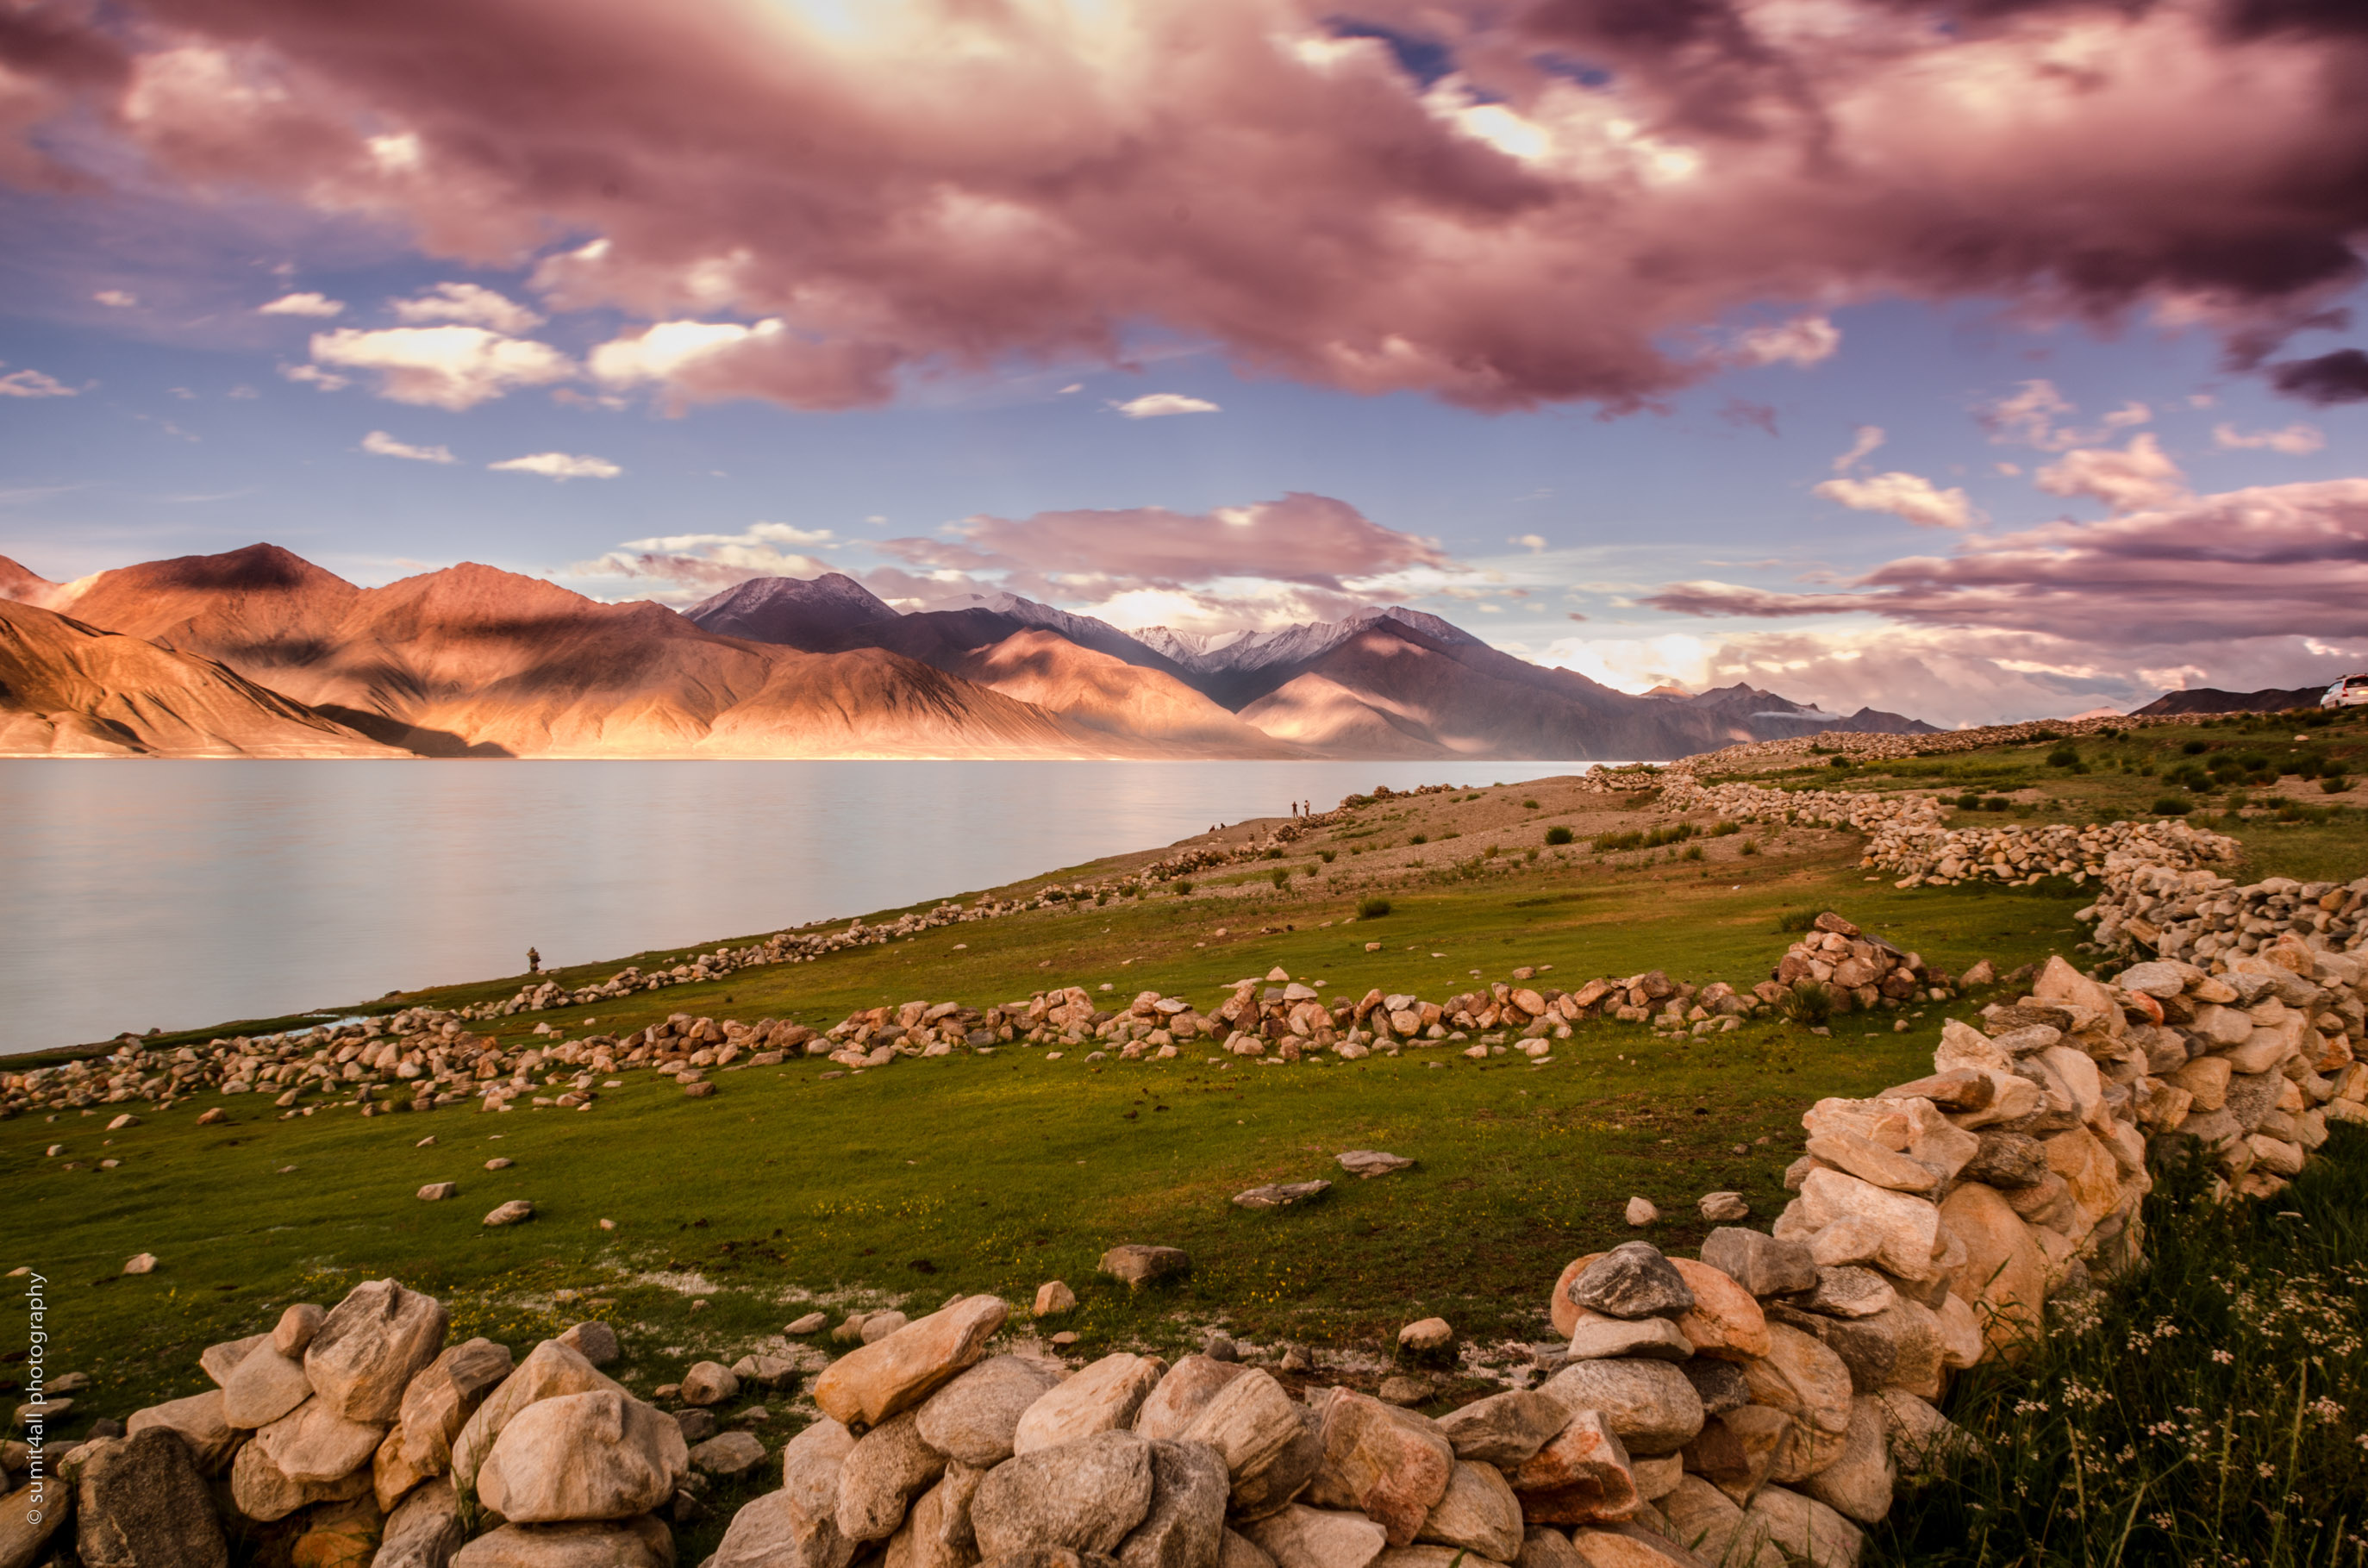 Beauty on the Border – The Pangong Tso Lake